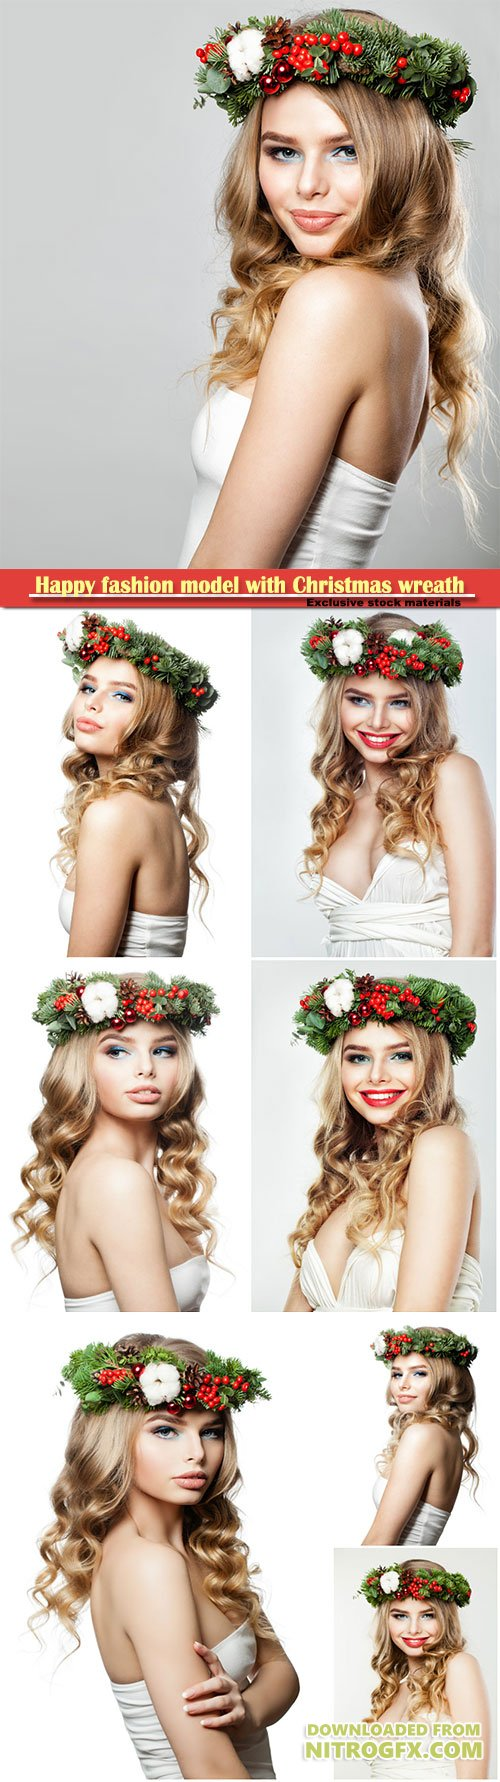 Happy fashion model with Christmas or New Year wreath